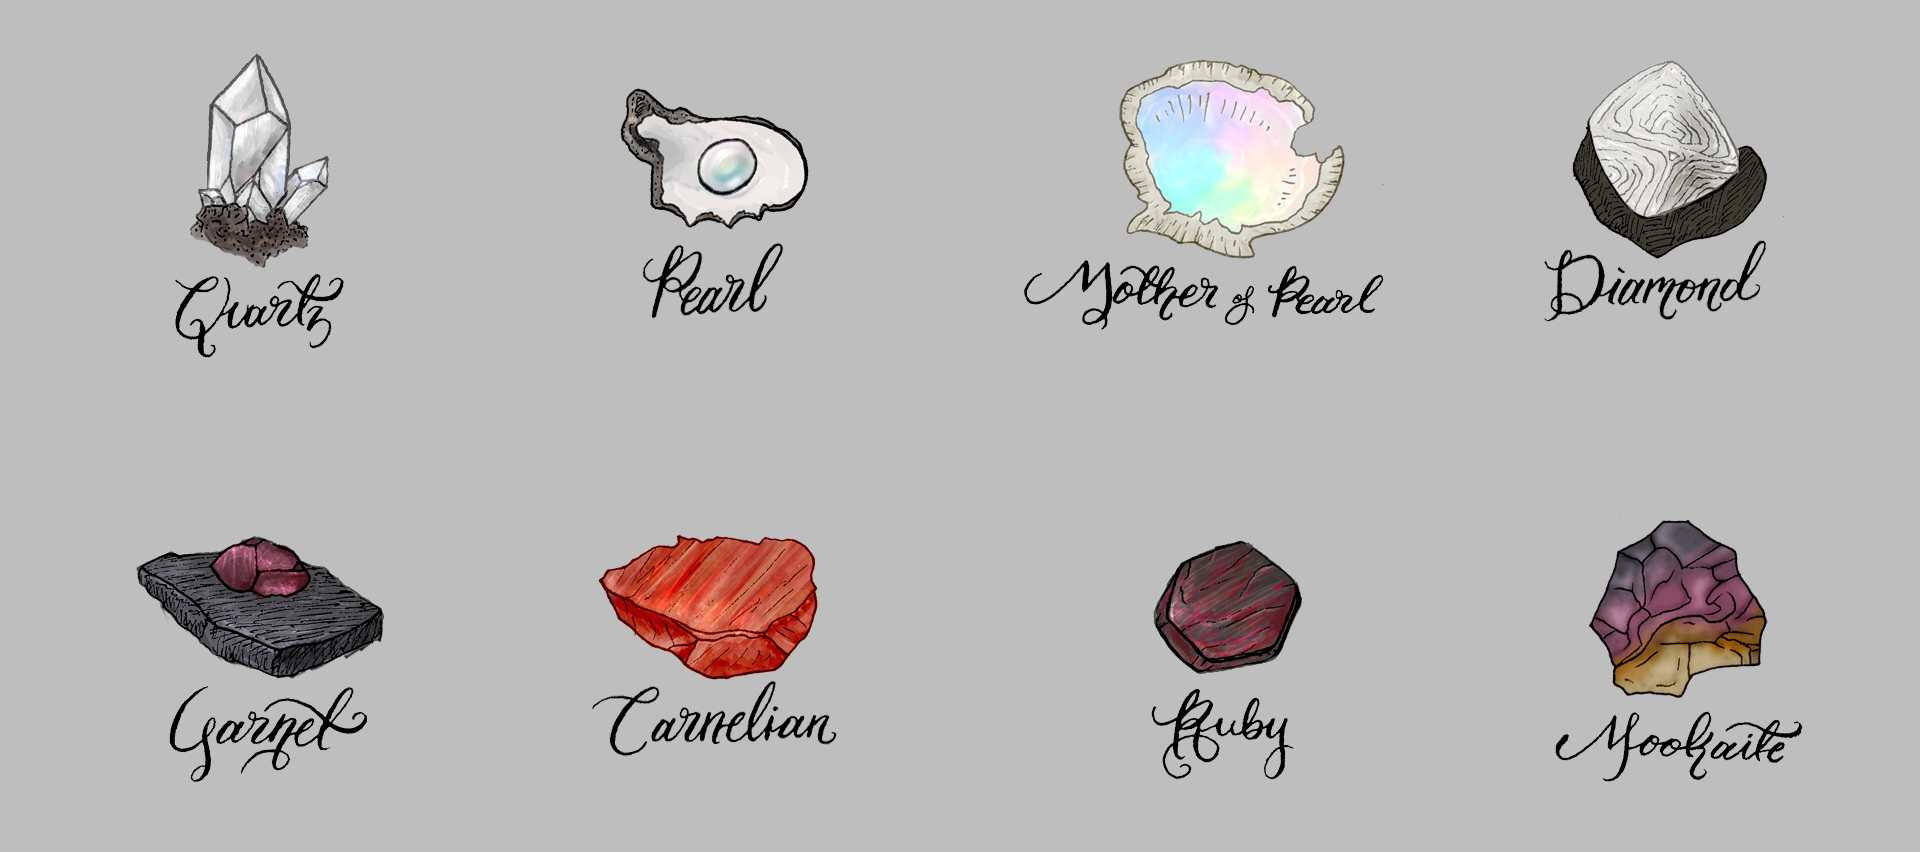 Crystals, Gems and Stones